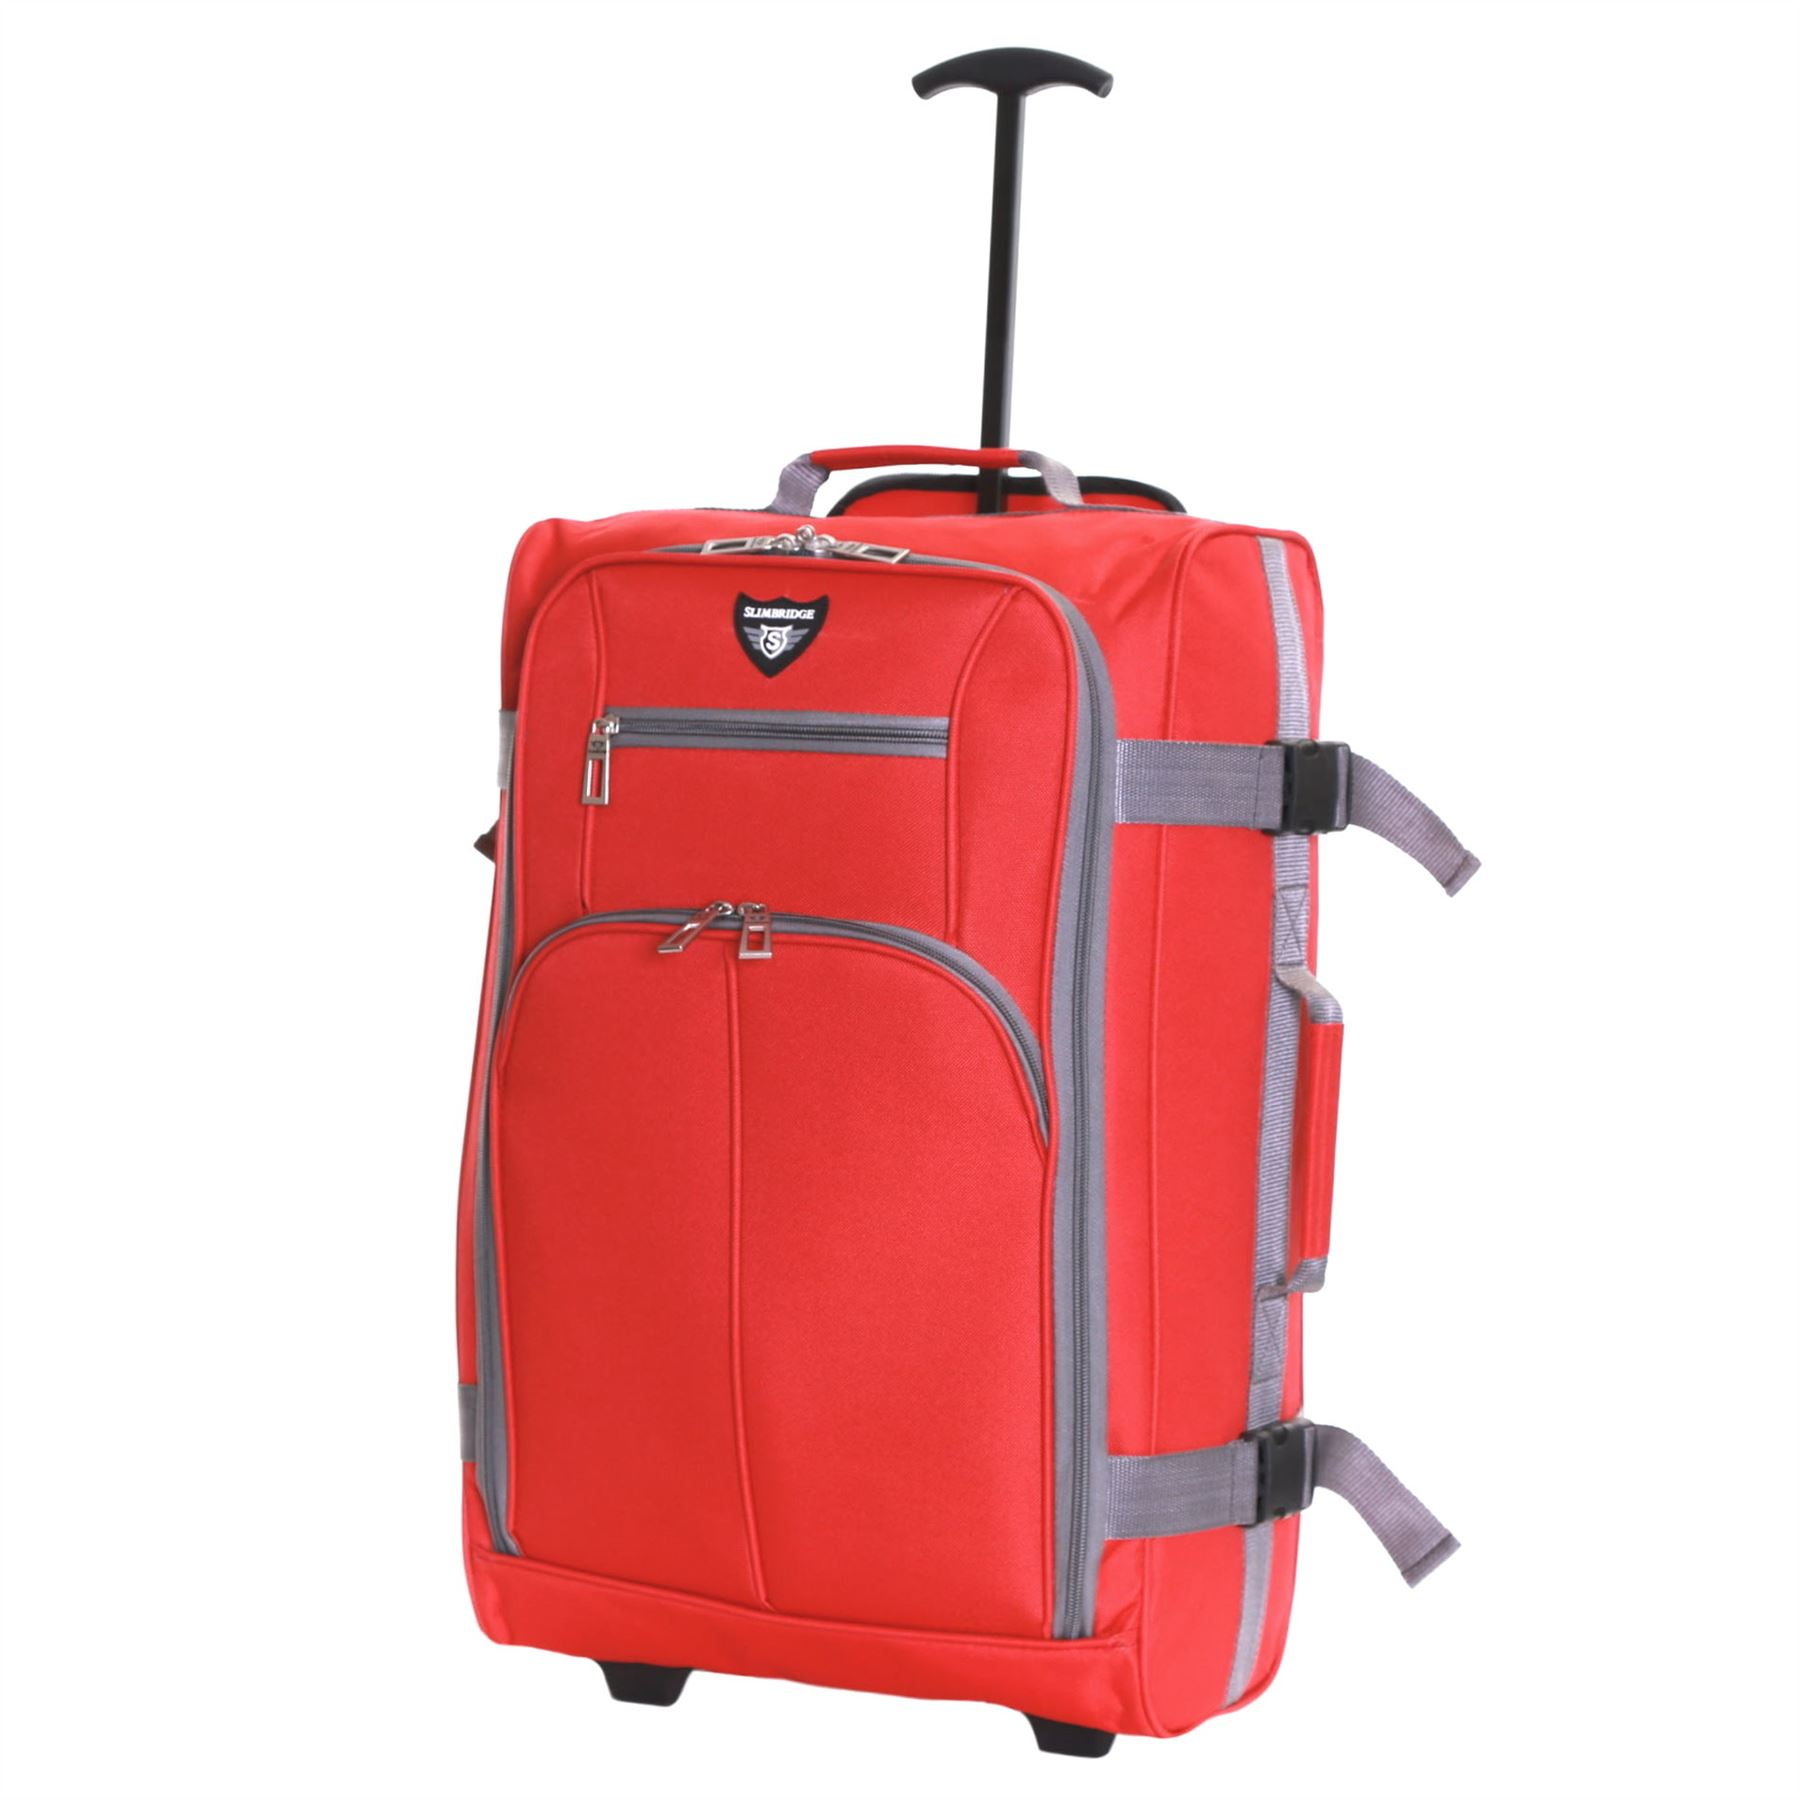 Ryanair-Easyjet-Set-of-2-Cabin-Approved-Hand-Trolley-Suitcases-Luggage-Case-Bags thumbnail 16